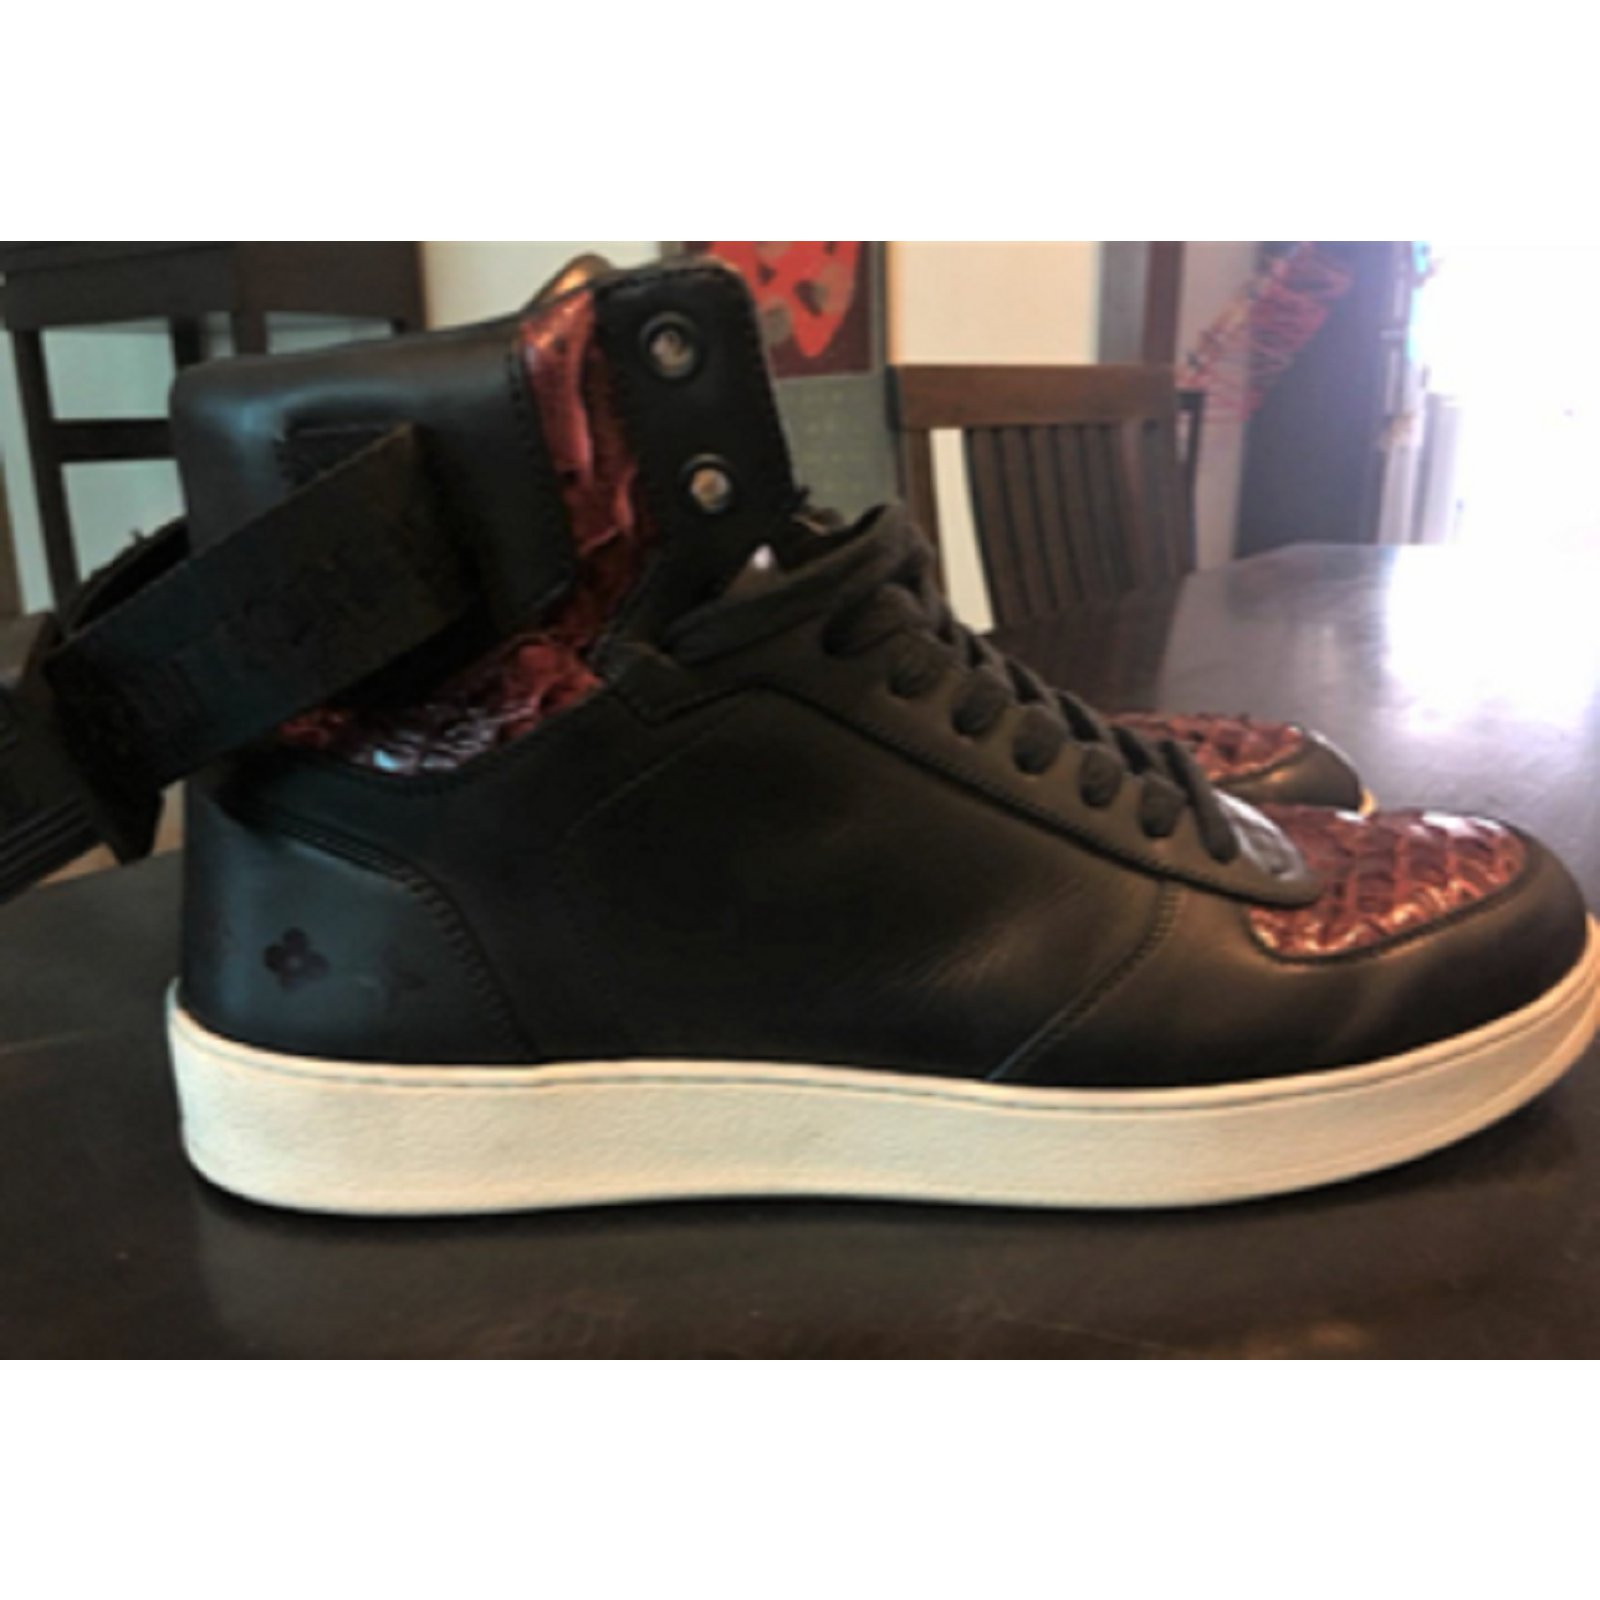 4d6d71f3ada Louis Vuitton Leather high top lace up sneakers Sneakers Leather Black ref. 84131 - Joli Closet